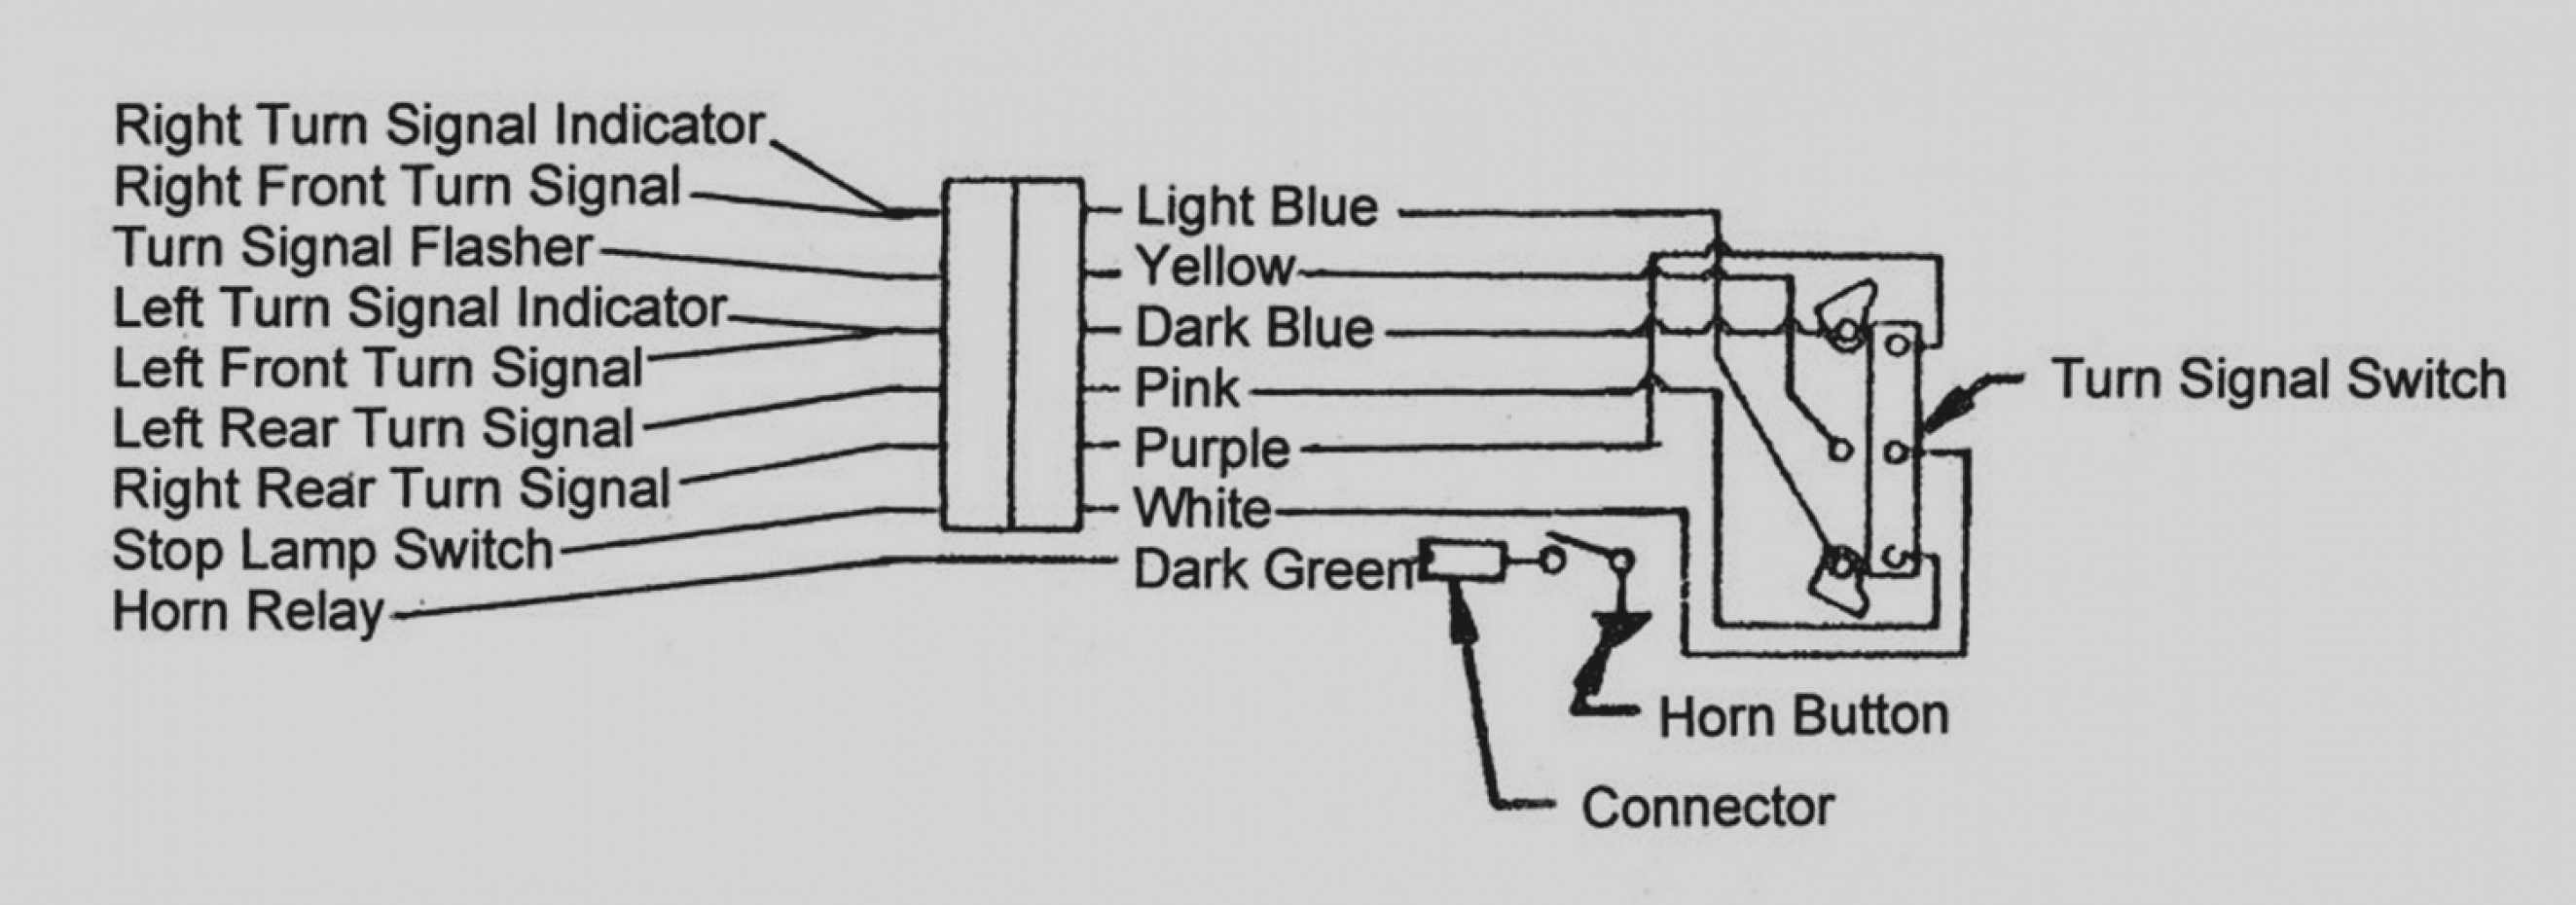 55 chevy tail light wiring harness schematic wiring diagram 1966 Chevy Truck Wiring Harness